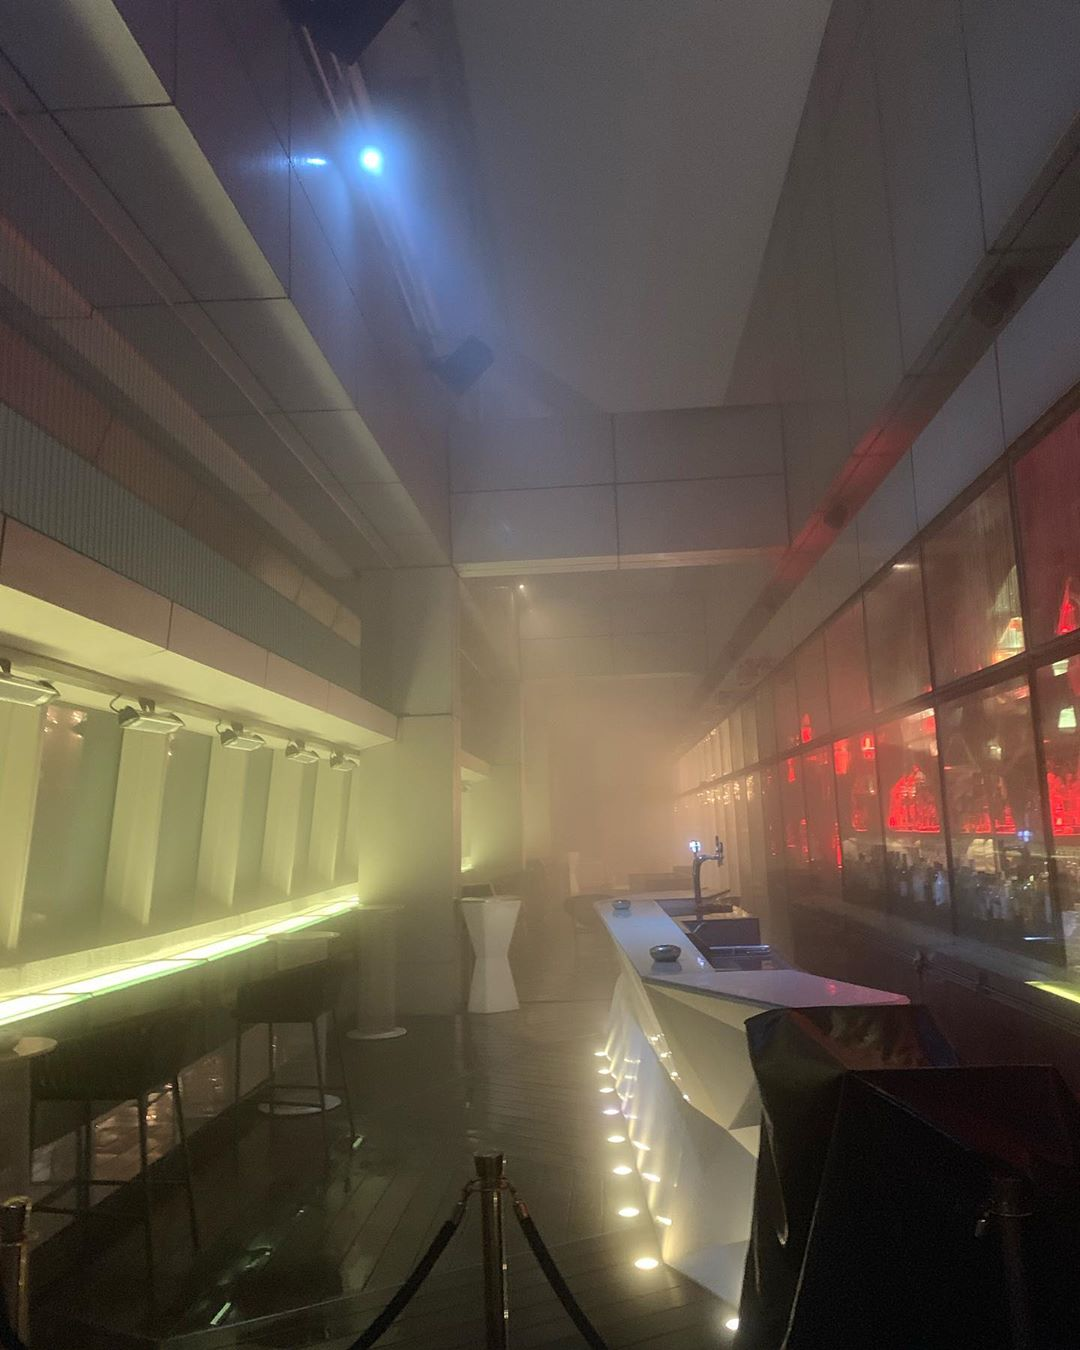 When I first got there, I thought it was frosted glass! Then I realized I was literally in the clouds on the 118th floor at the Ozone Bar in Hong Kong! Of course I had to drink and breathe in the clouds on the patio :) @ok_martee @eric_is_here